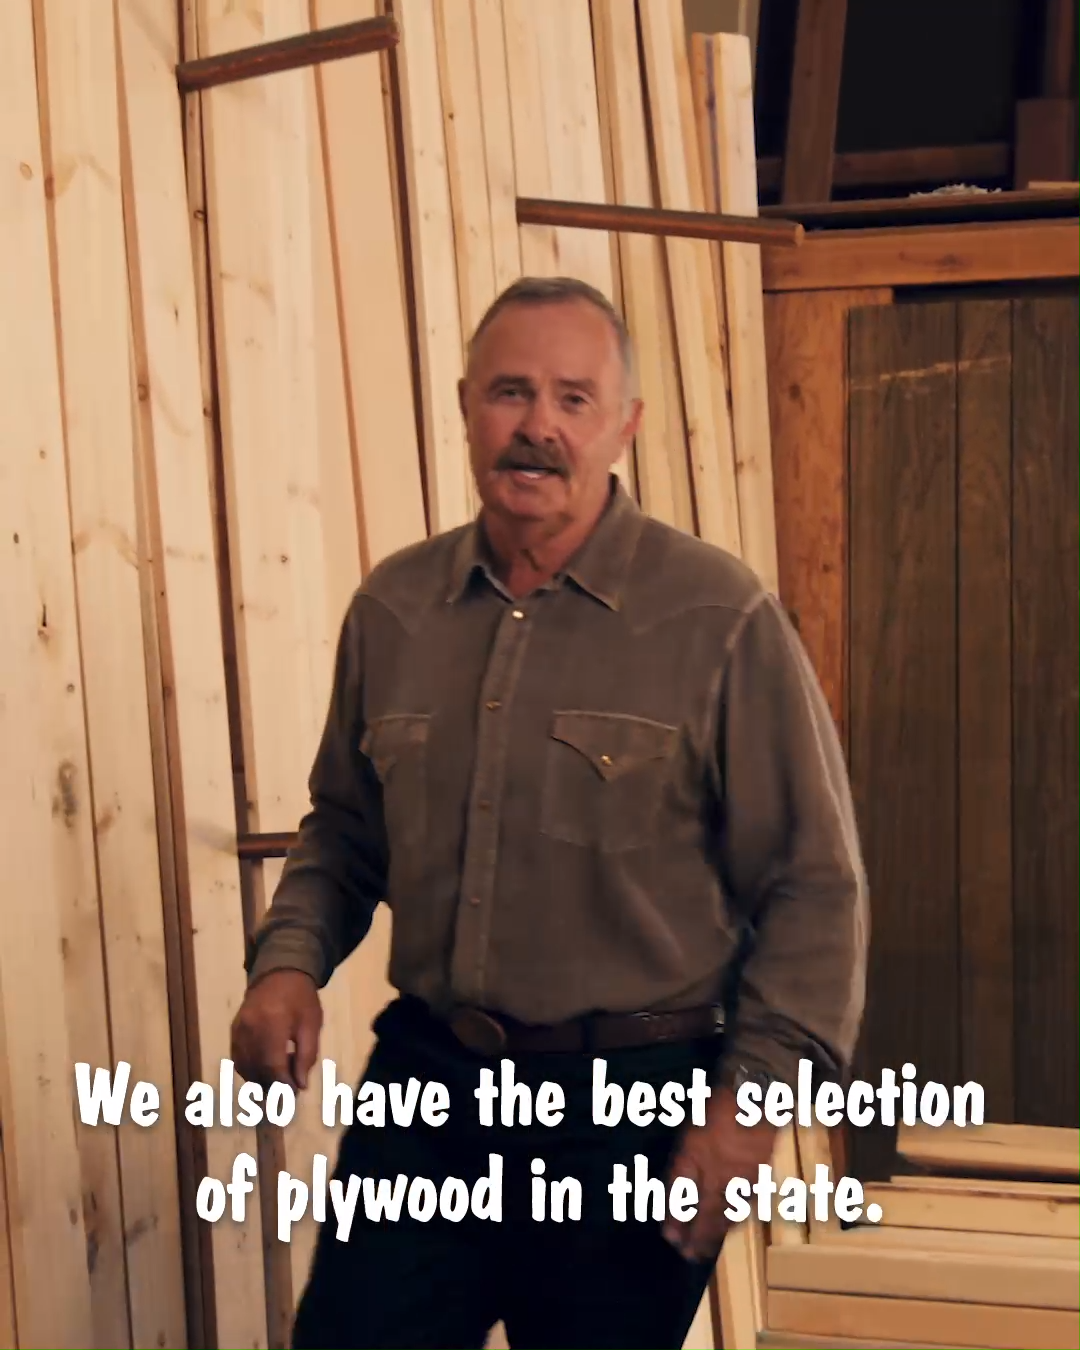 All Lonnie Wanted To Do Was Film A Commercial For His Lumber Yard